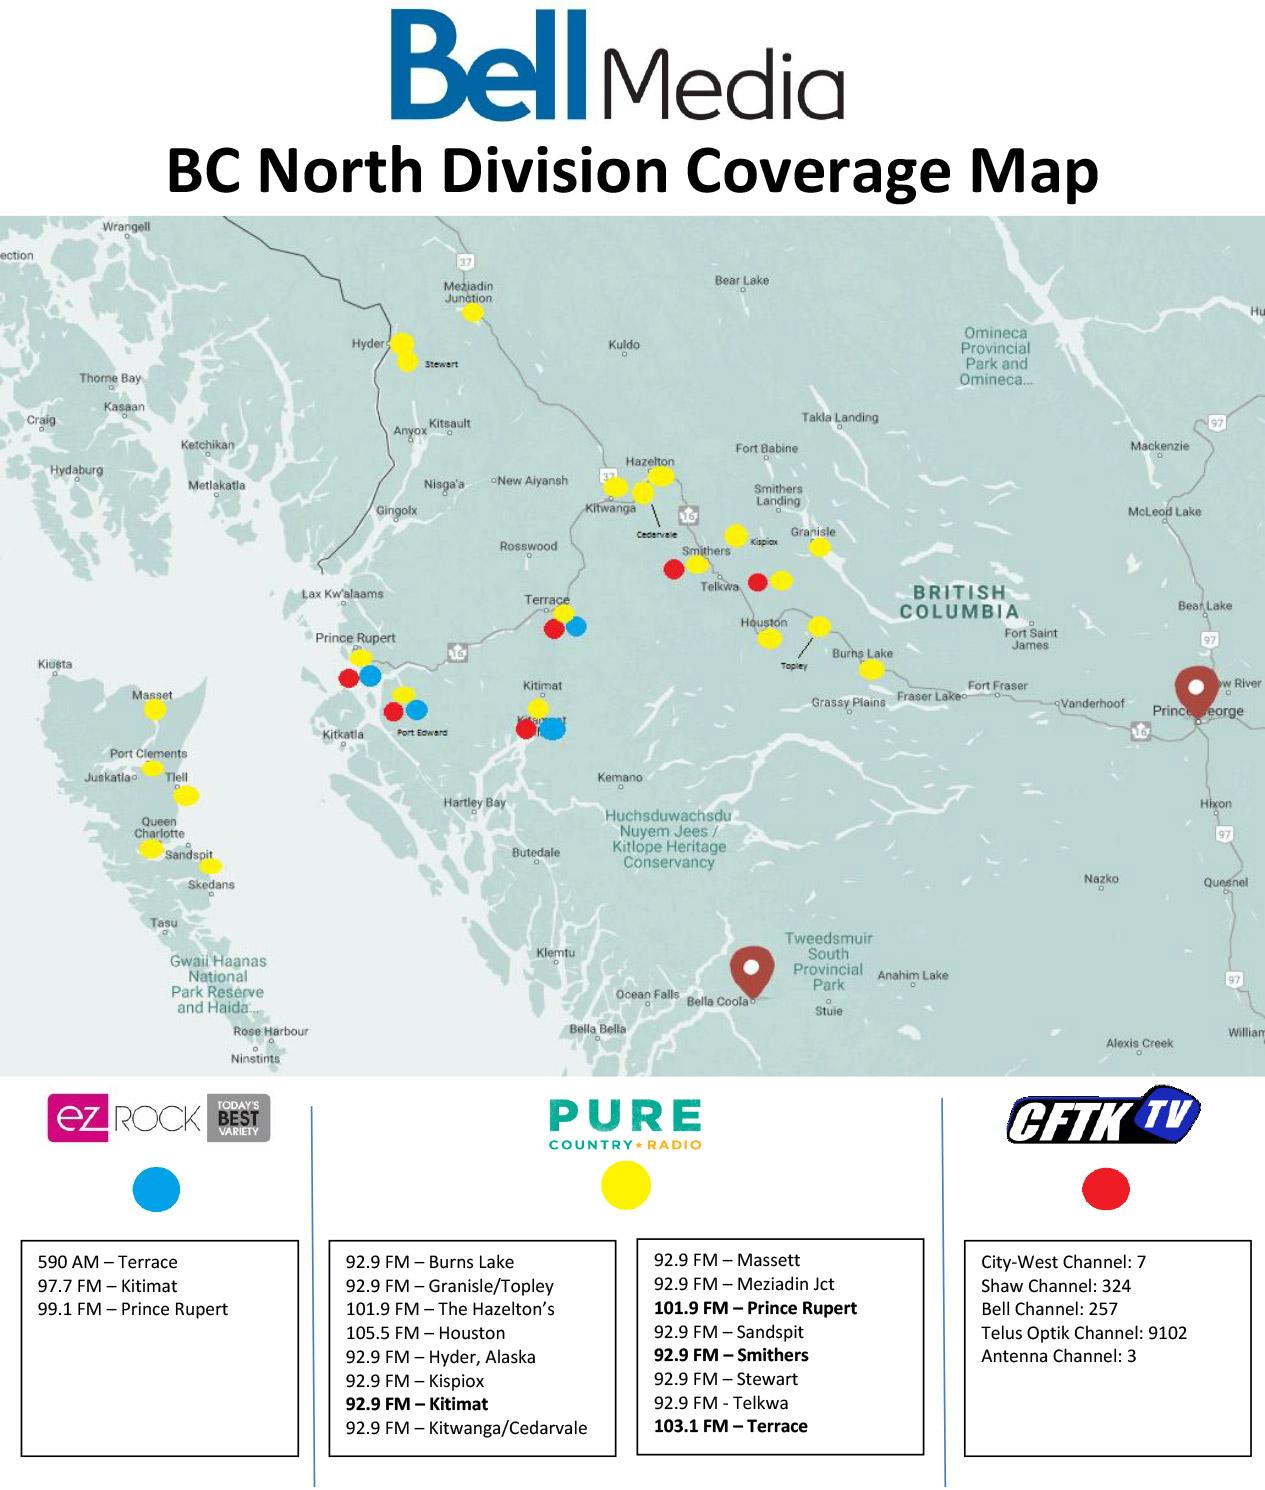 BC Coverage Map